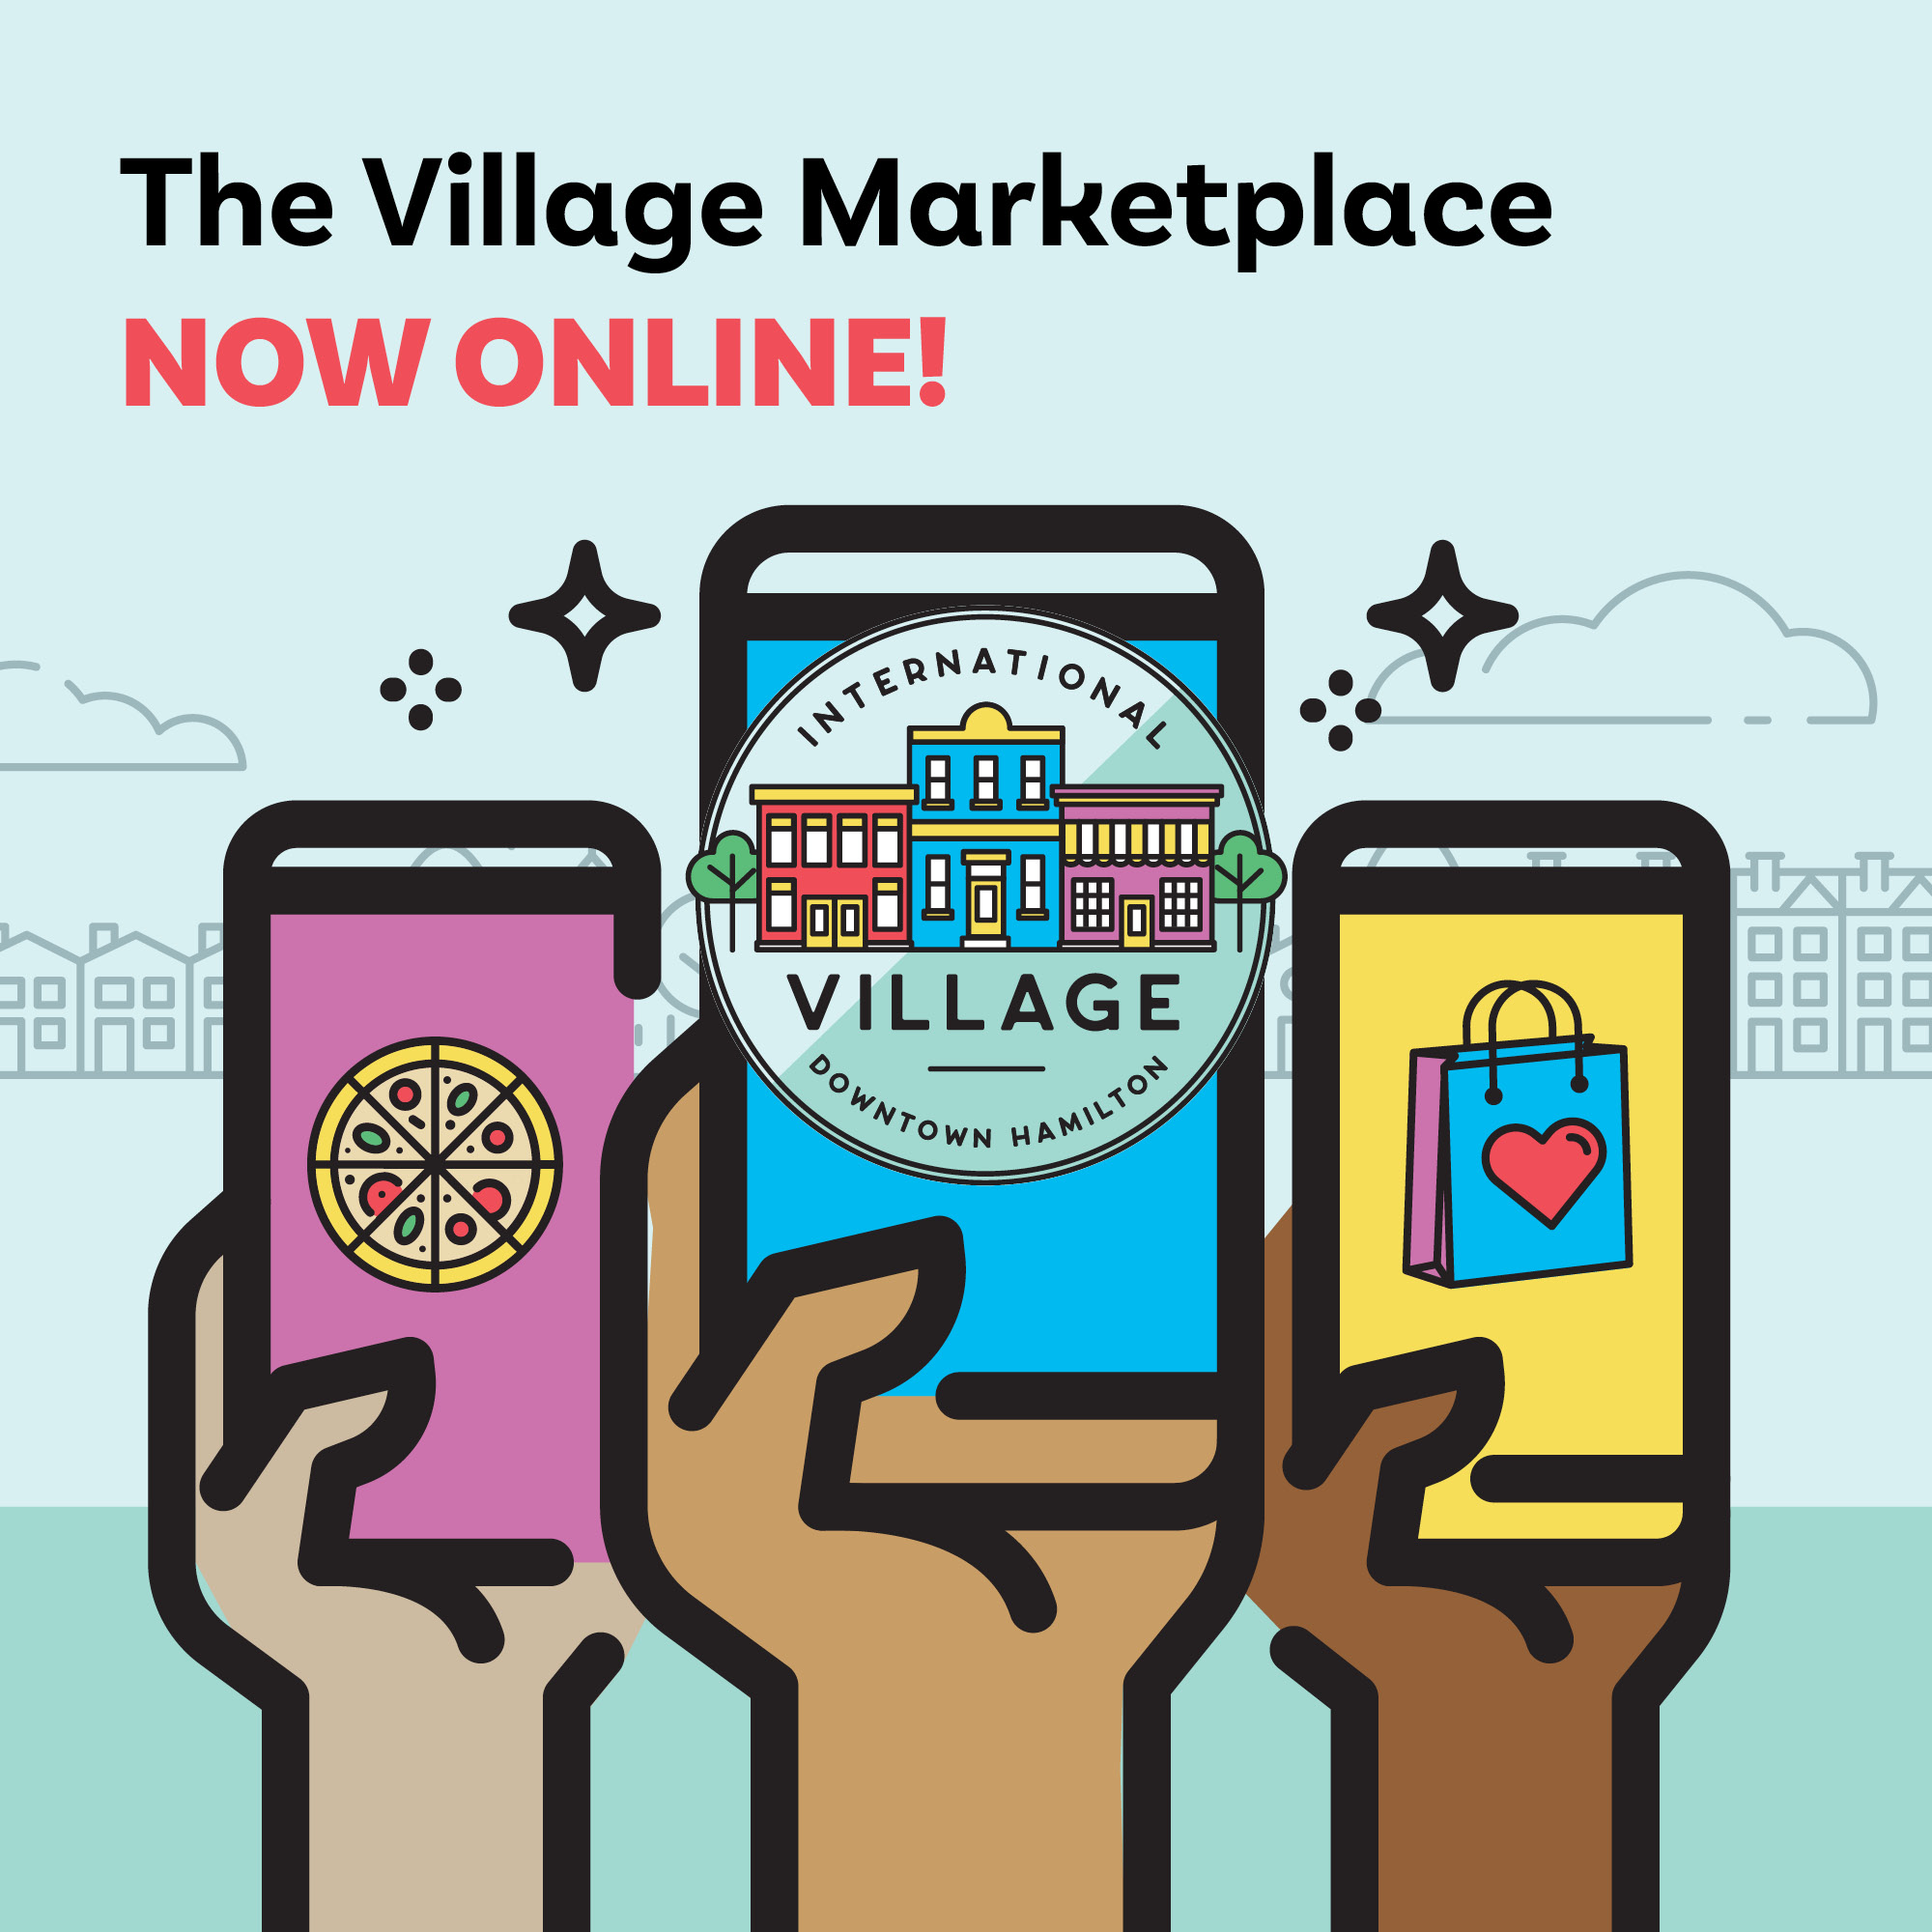 graphic of person holding a phone with the International Village BIA logo